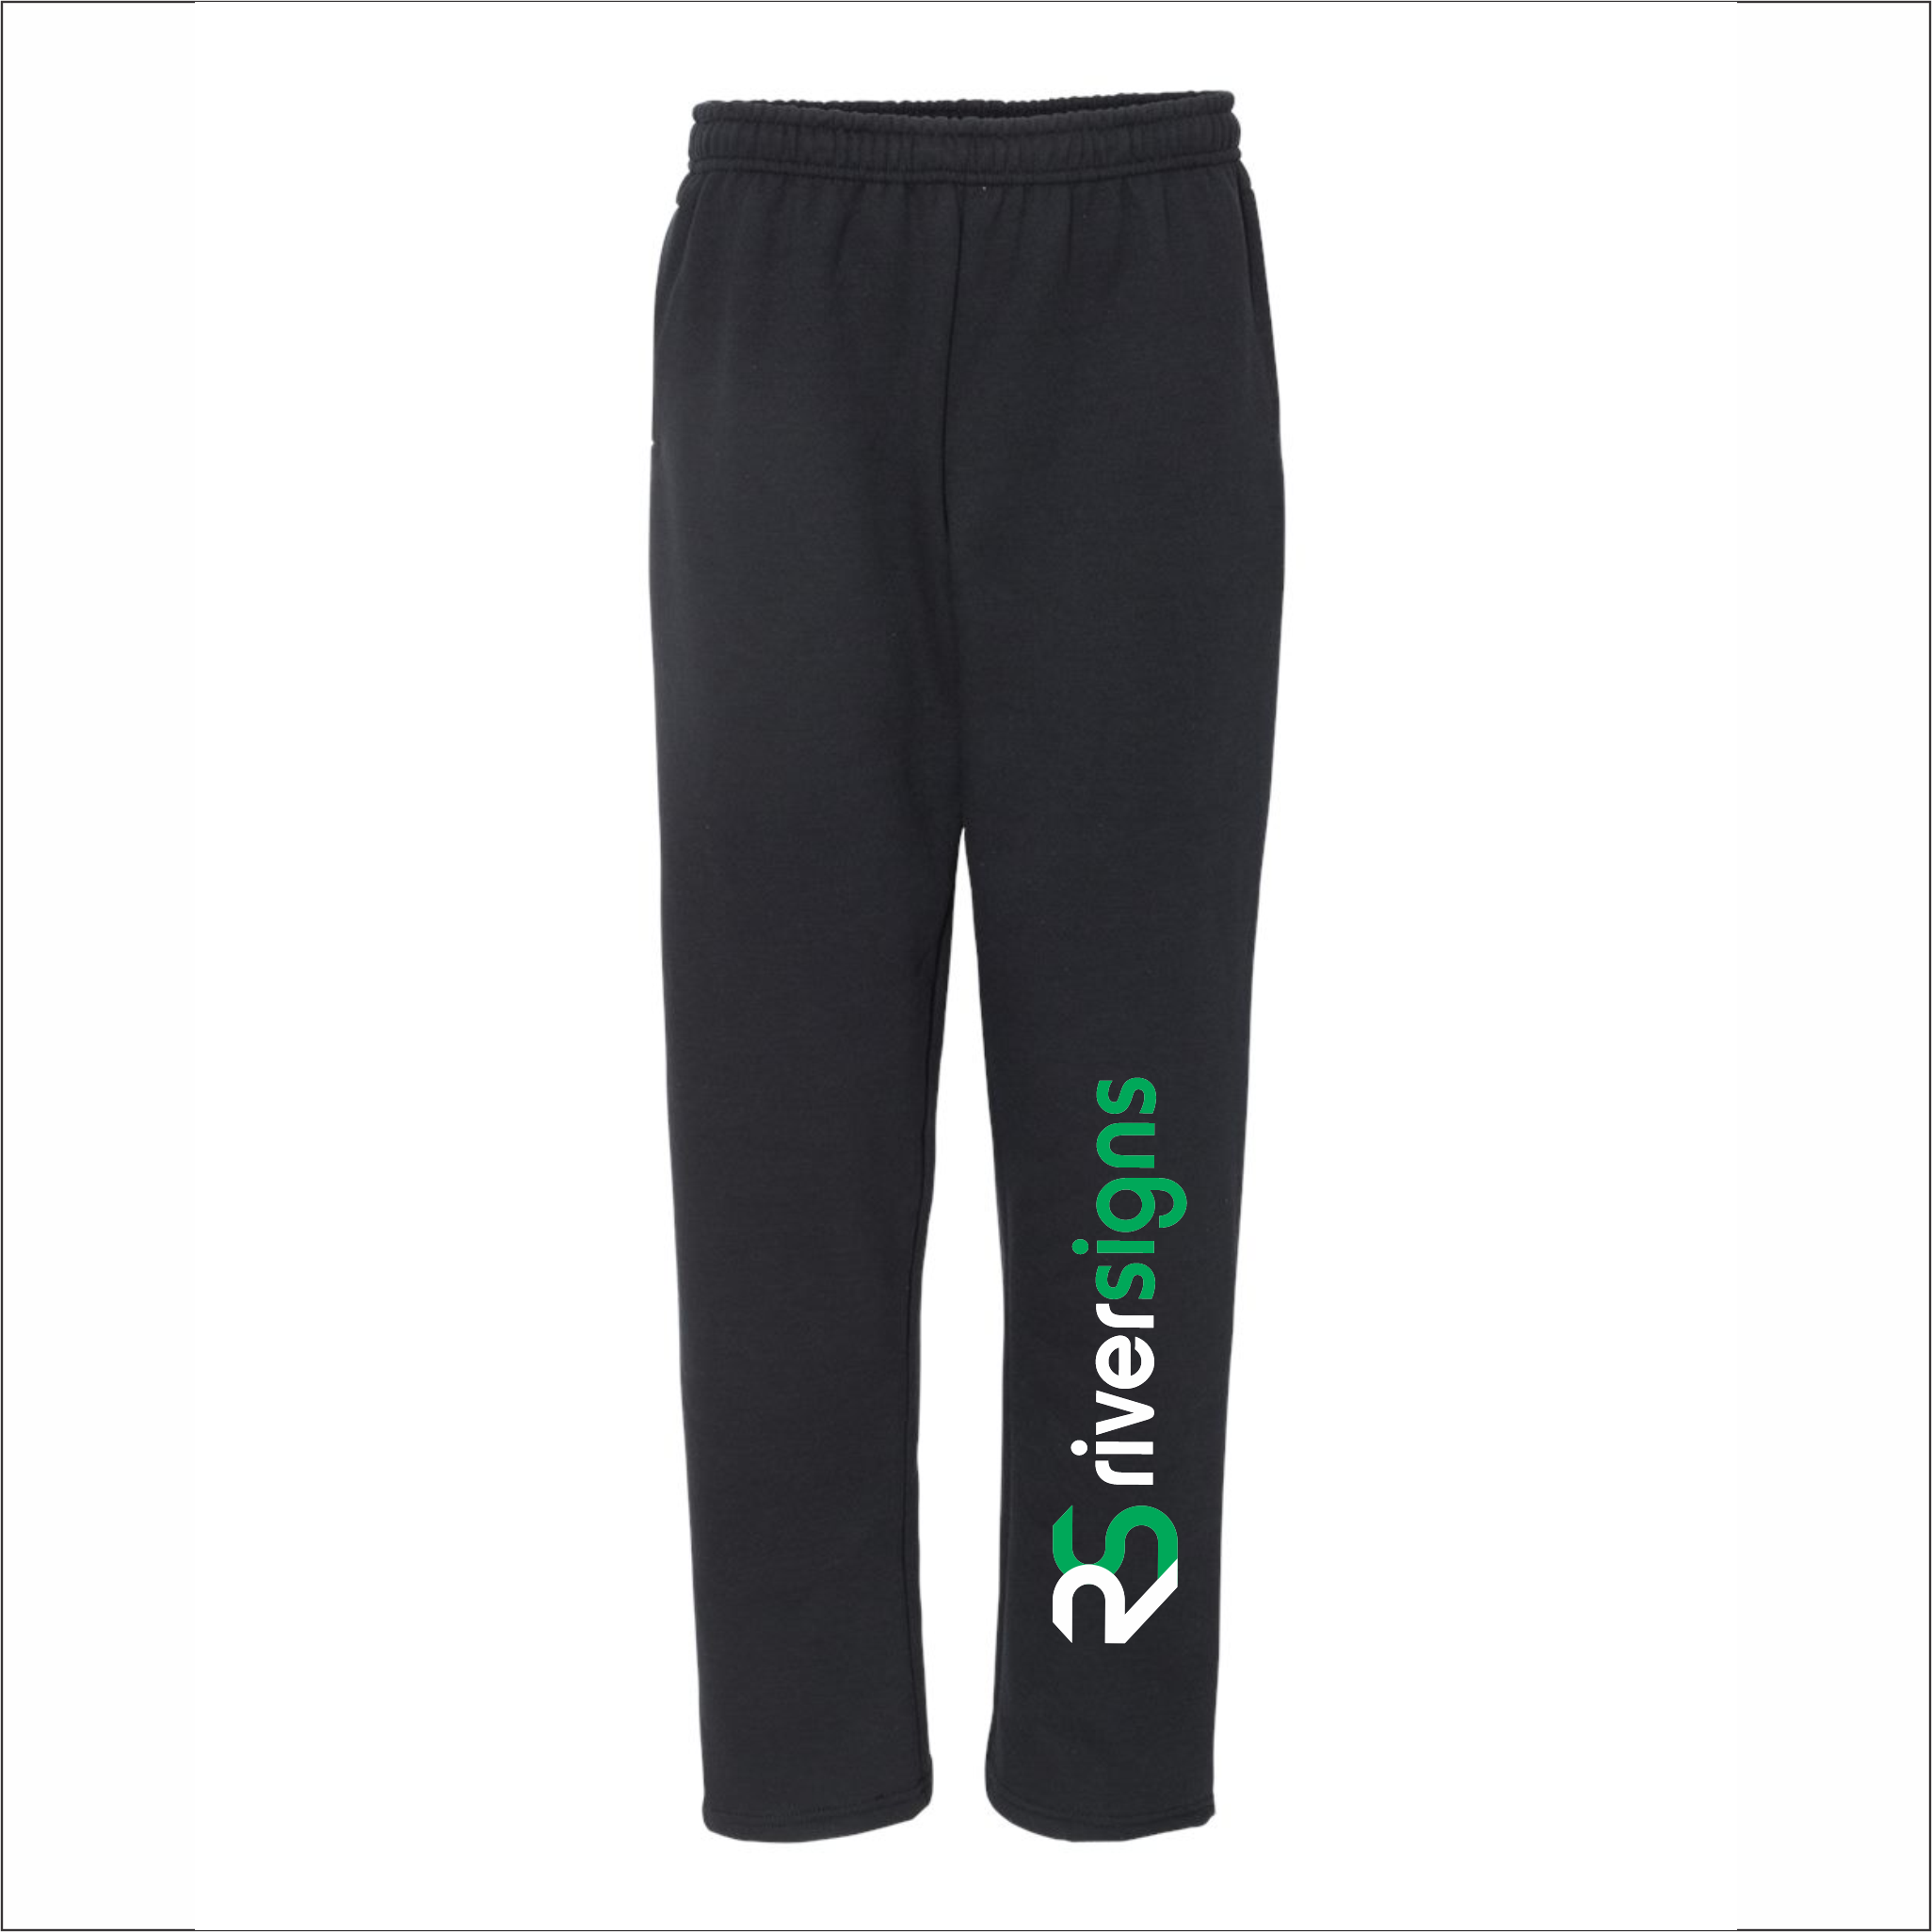 Adult Sweatpants - Open-Bottom with Pockets - Gildan 18300